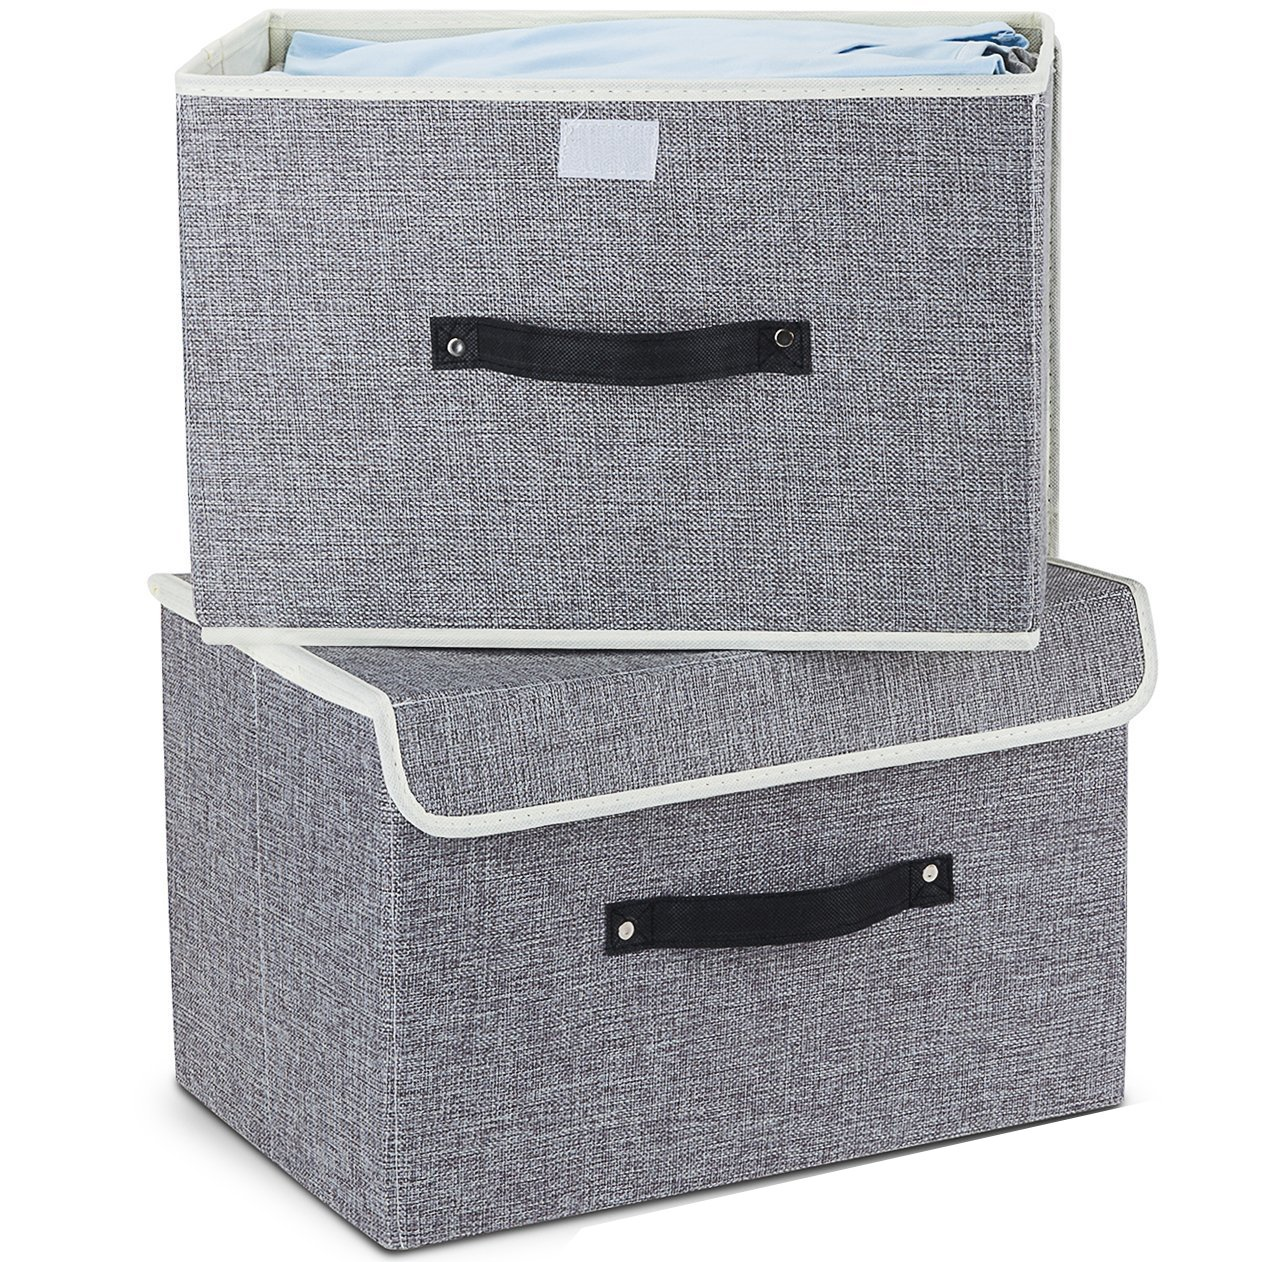 Storage Bins,Meeu0027life Set Of Two Foldable Storage Box With Lids And Handles